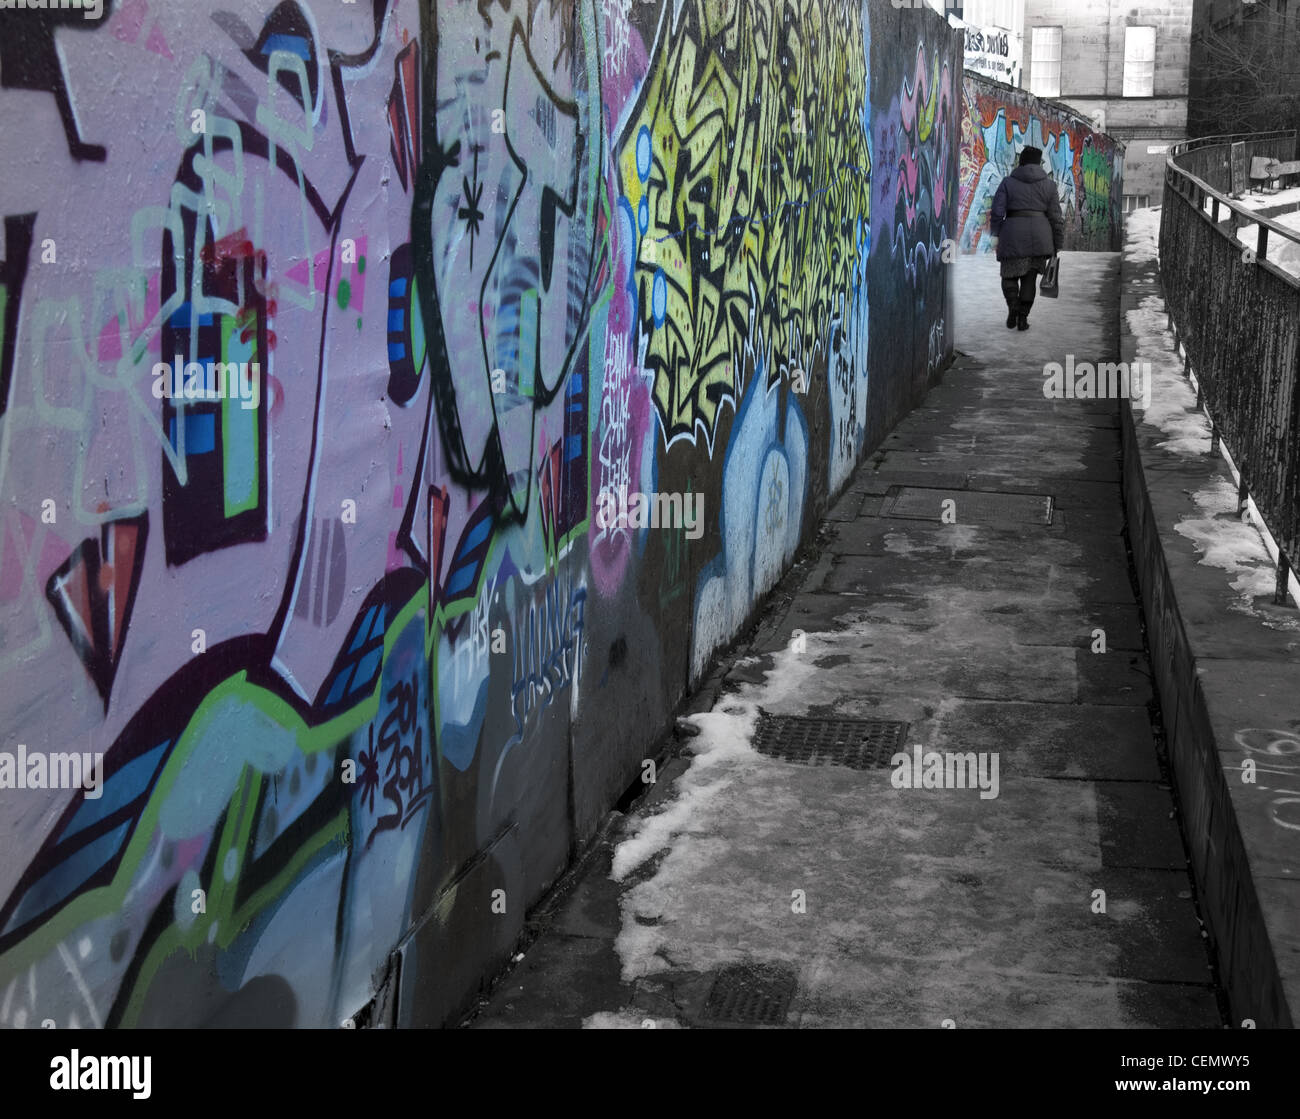 Edinburgh Graffiti and old person inner city scotland. A lonely UK urban street scene in icy winter, snow on the - Stock Image